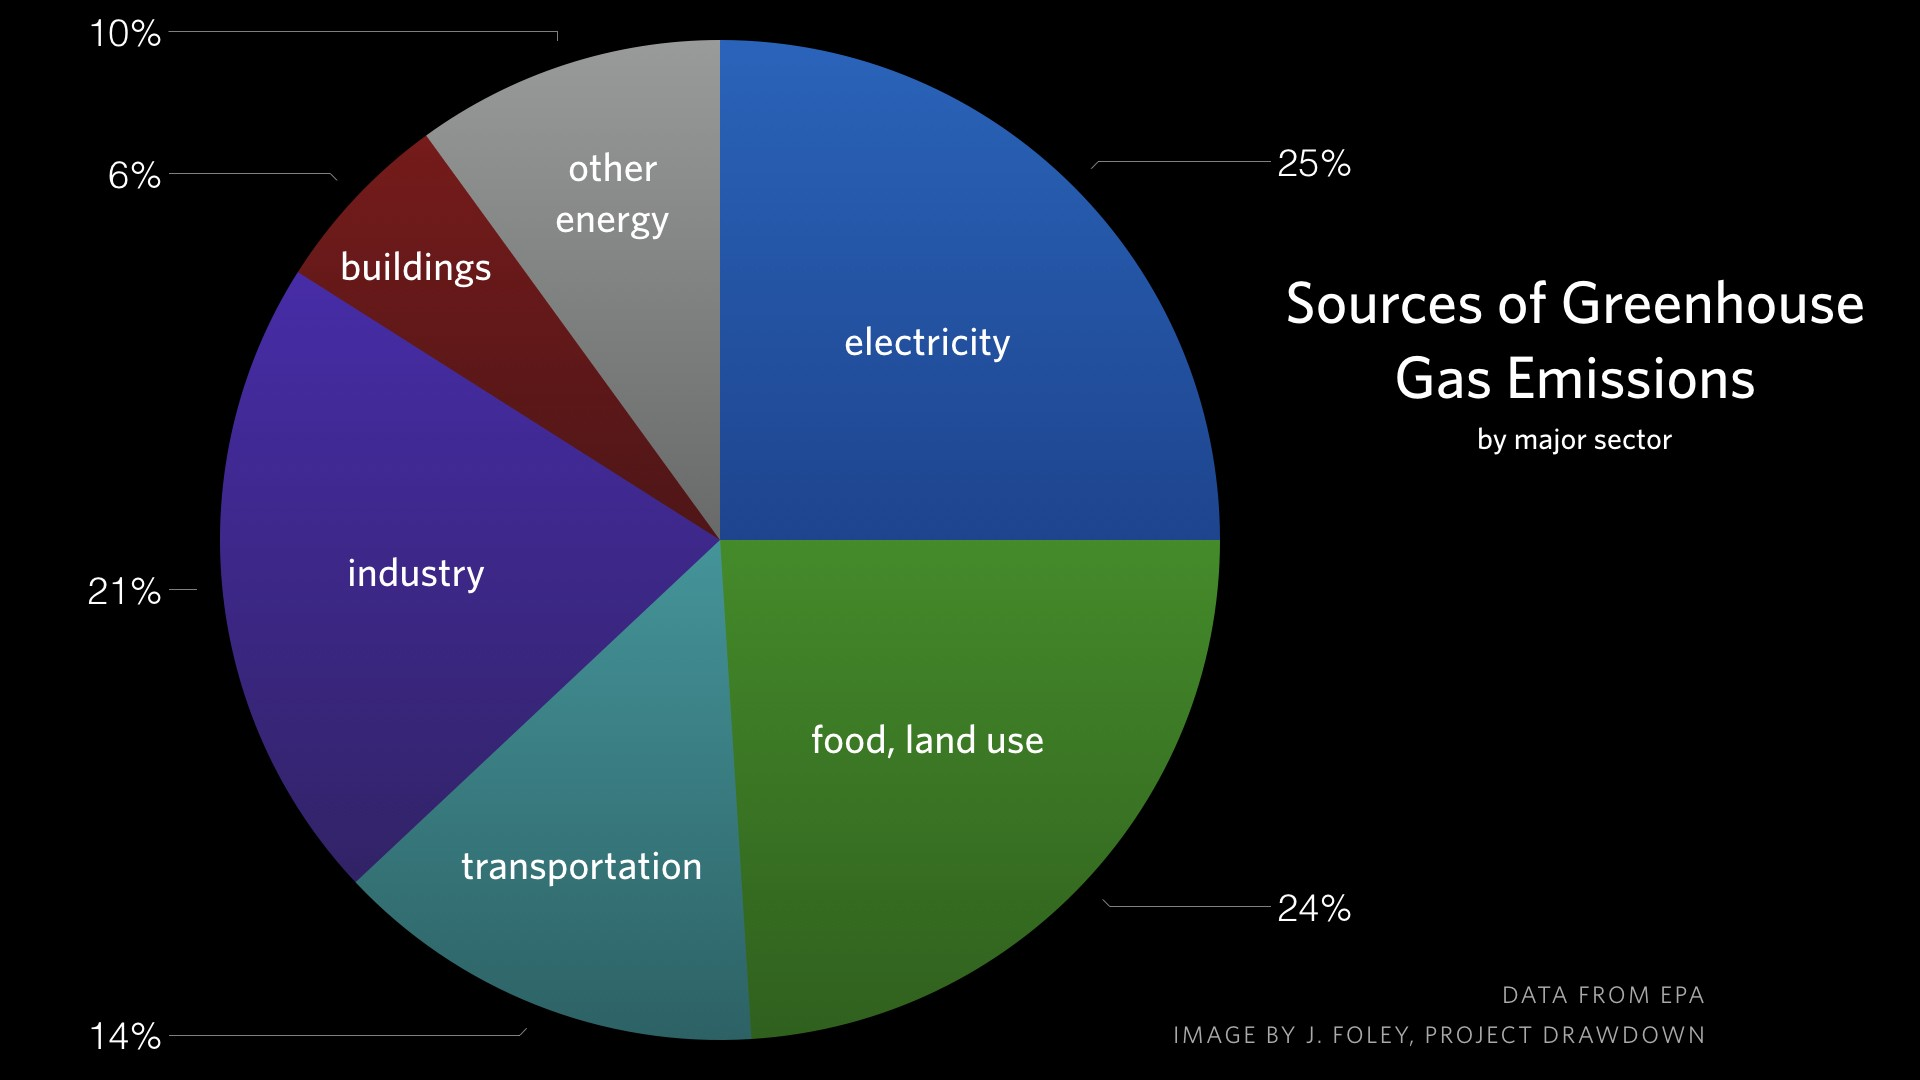 Pie chart showing sources of greenhouse gas emissions, from Dr Foley